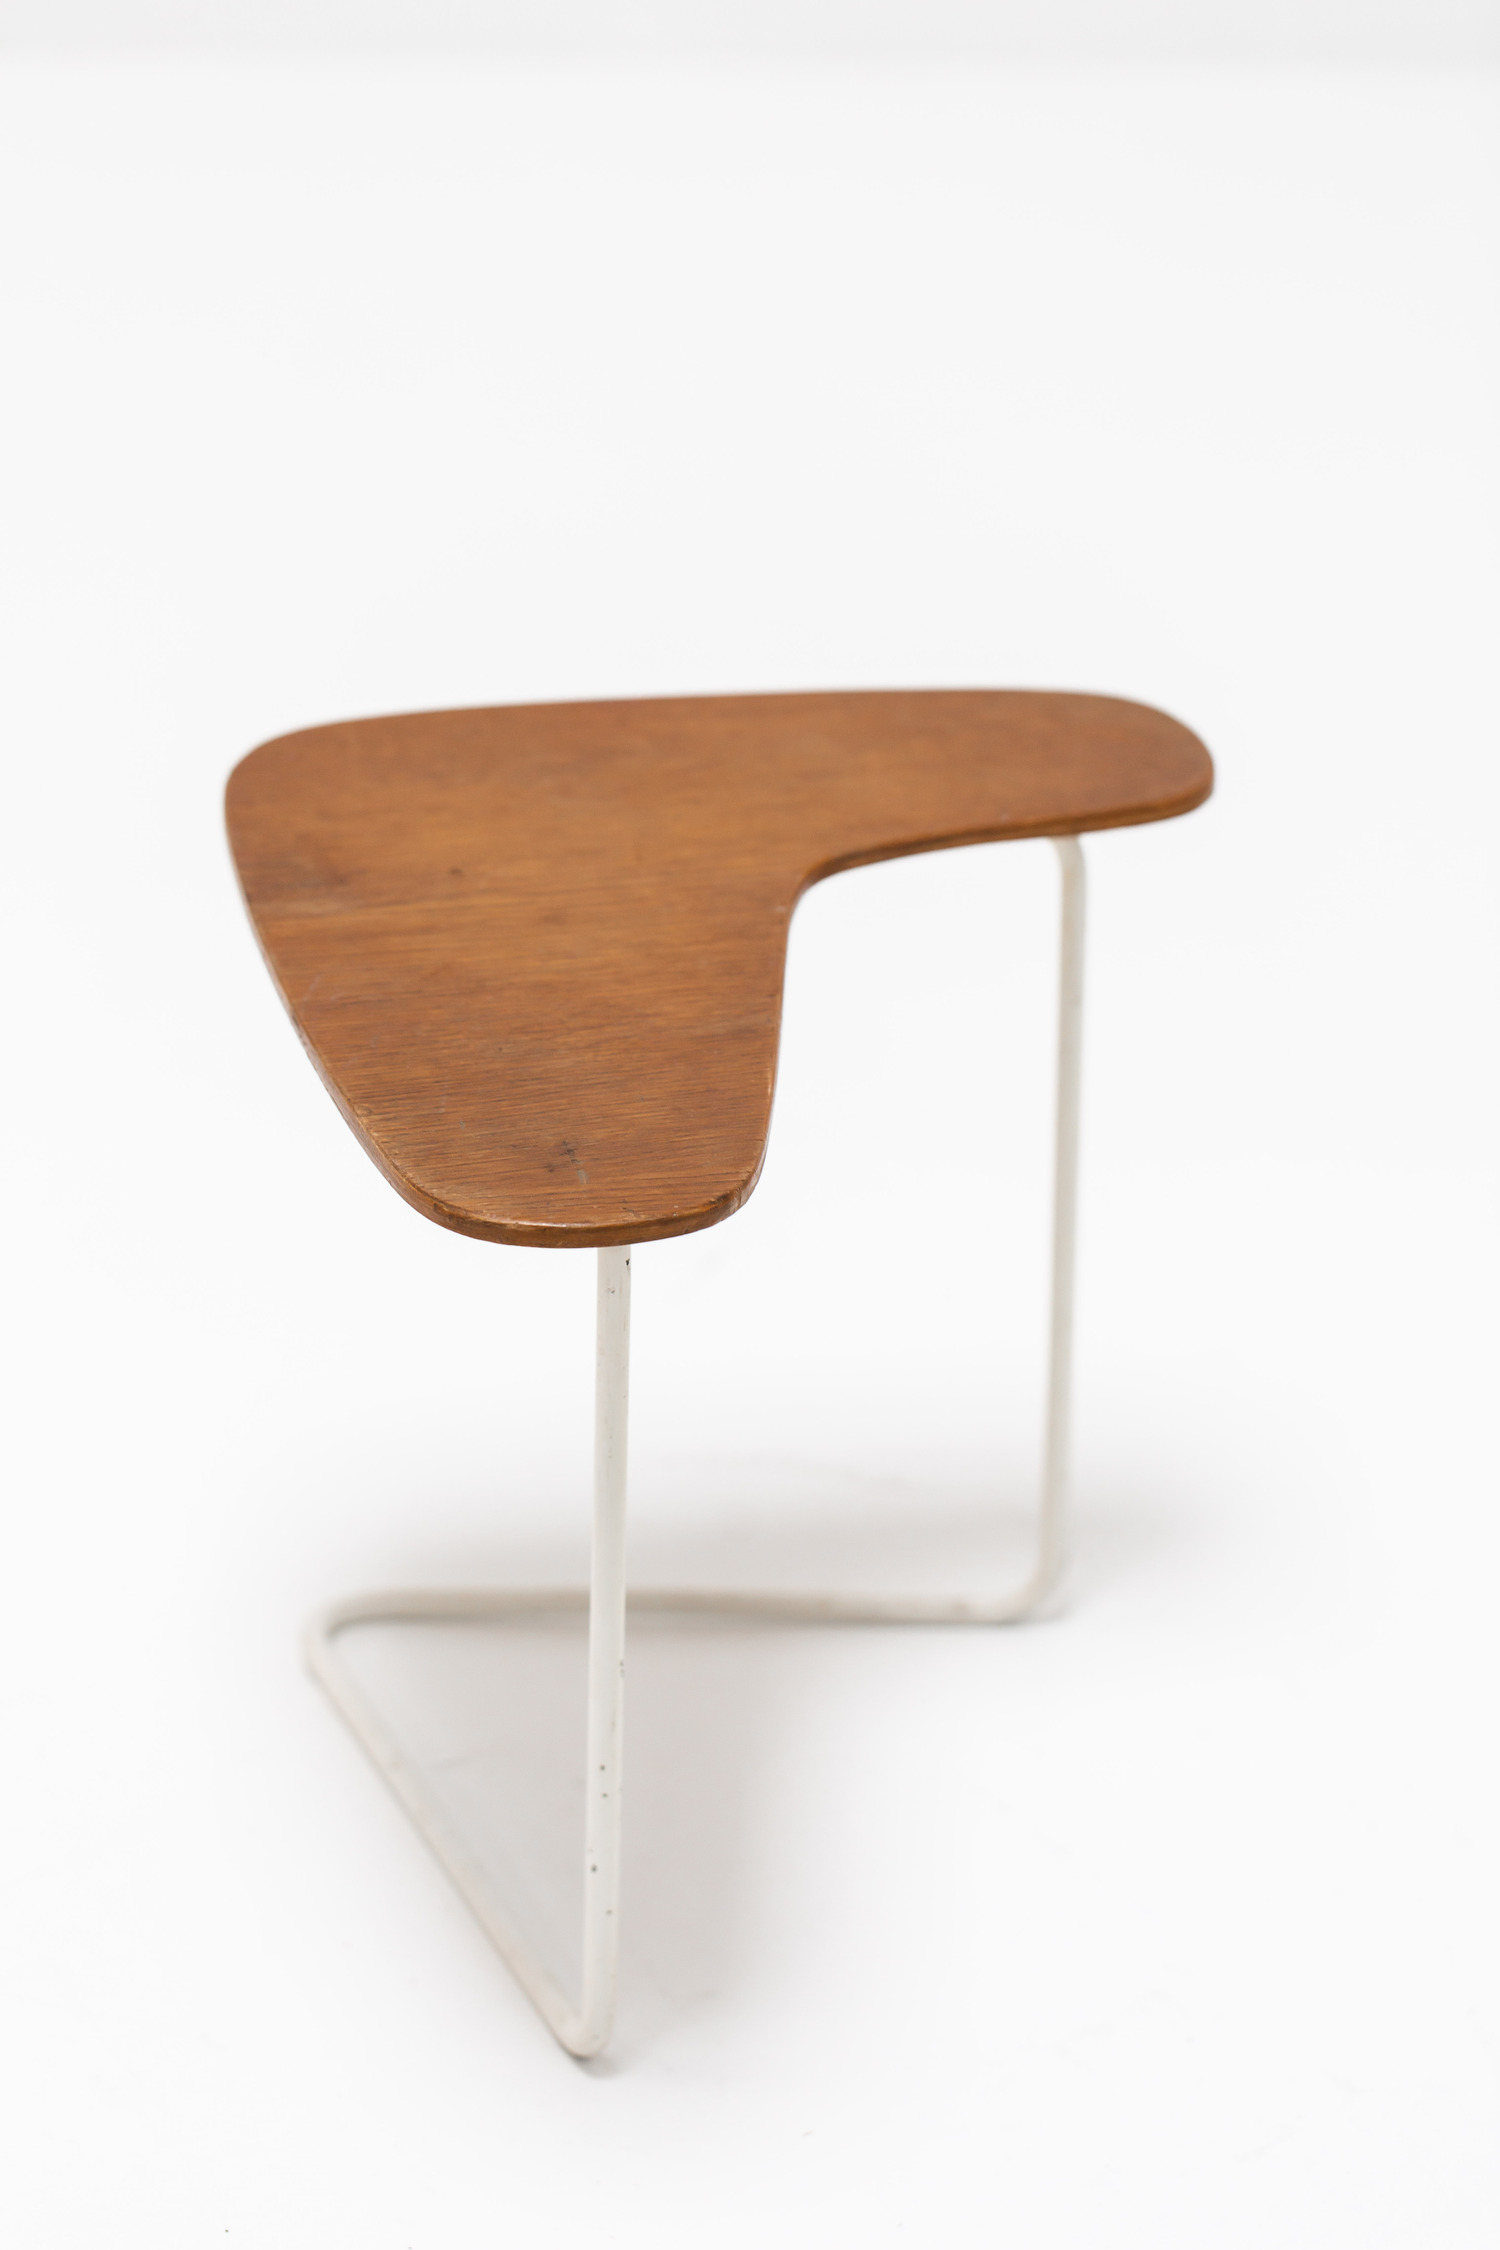 Willy Van Der Meeren Boomerang table